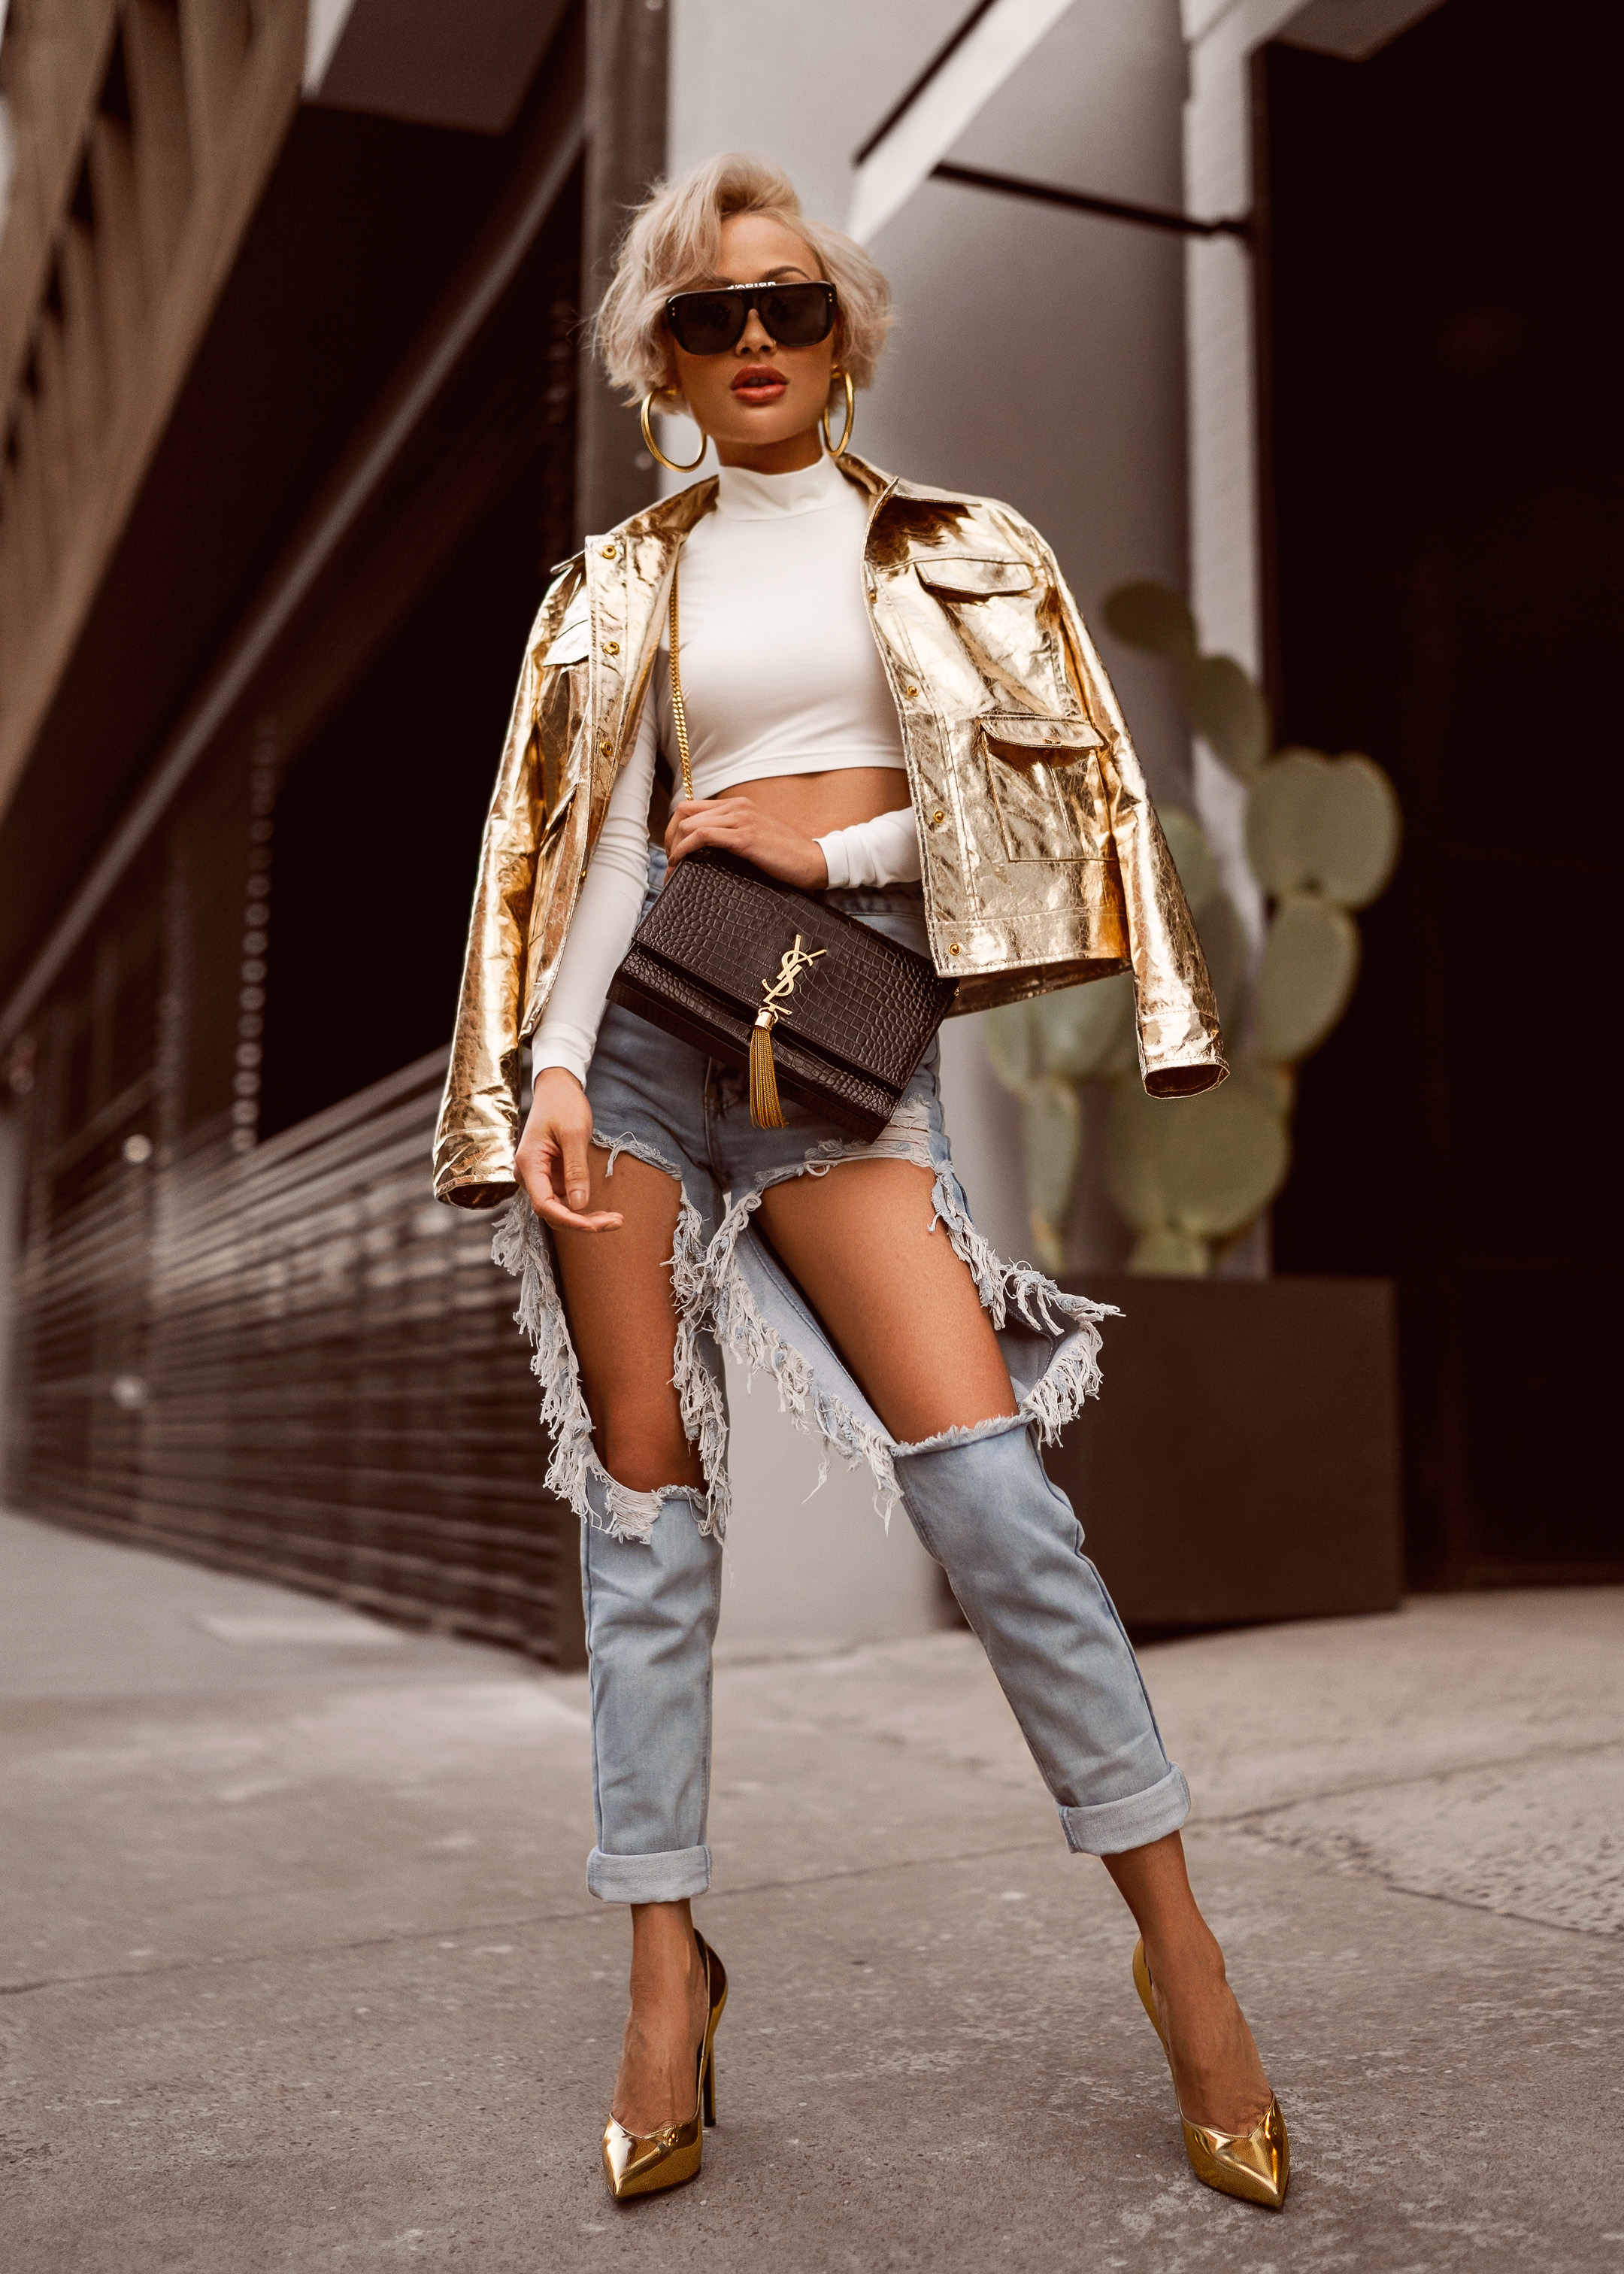 Micah-Gianneli-Australian-Melbourne-Fashion-Blogger-Influencer-Photography-Street-Style-Vogue-Editorial-Luxury-Christian-Dior-YSL-Saint-Laurent-Boohoo-Denim-Jeans